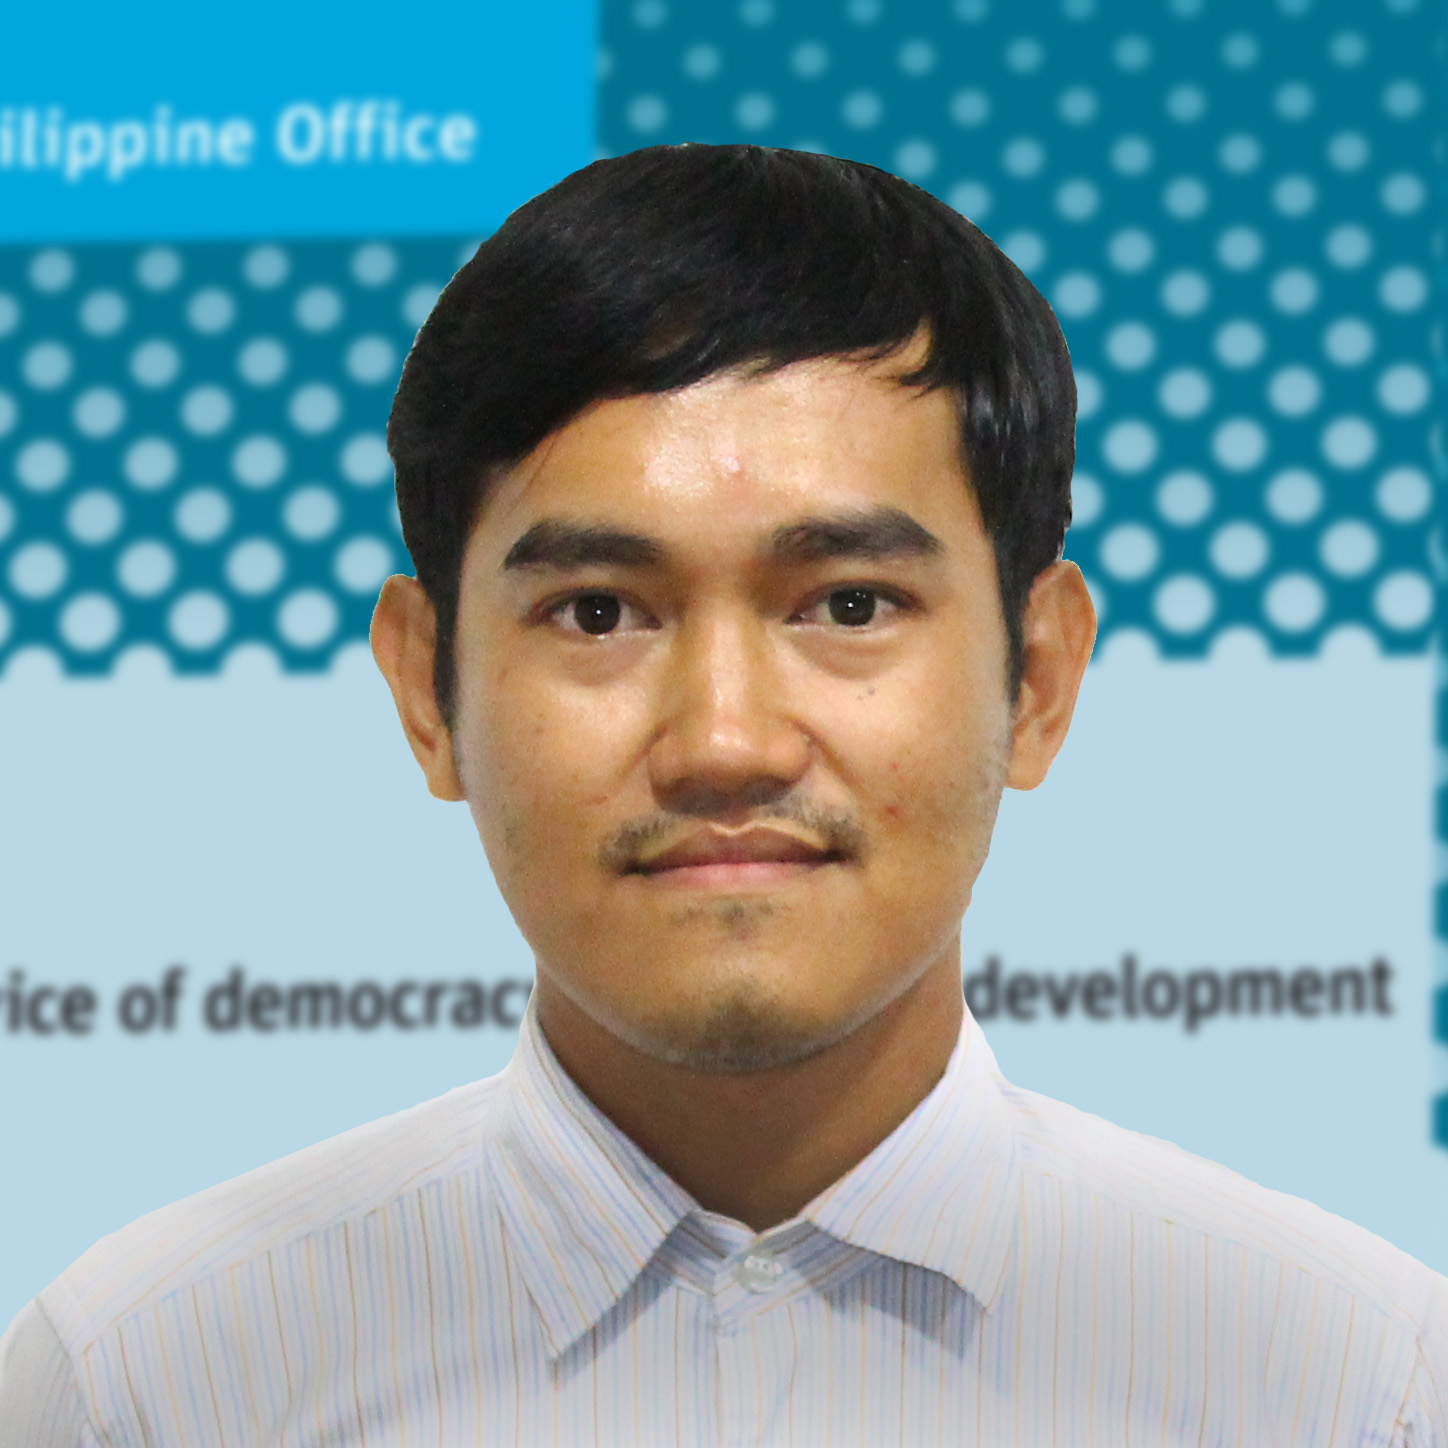 IT/Website Administrator and Monitoring Officer: Jan Michael Yap